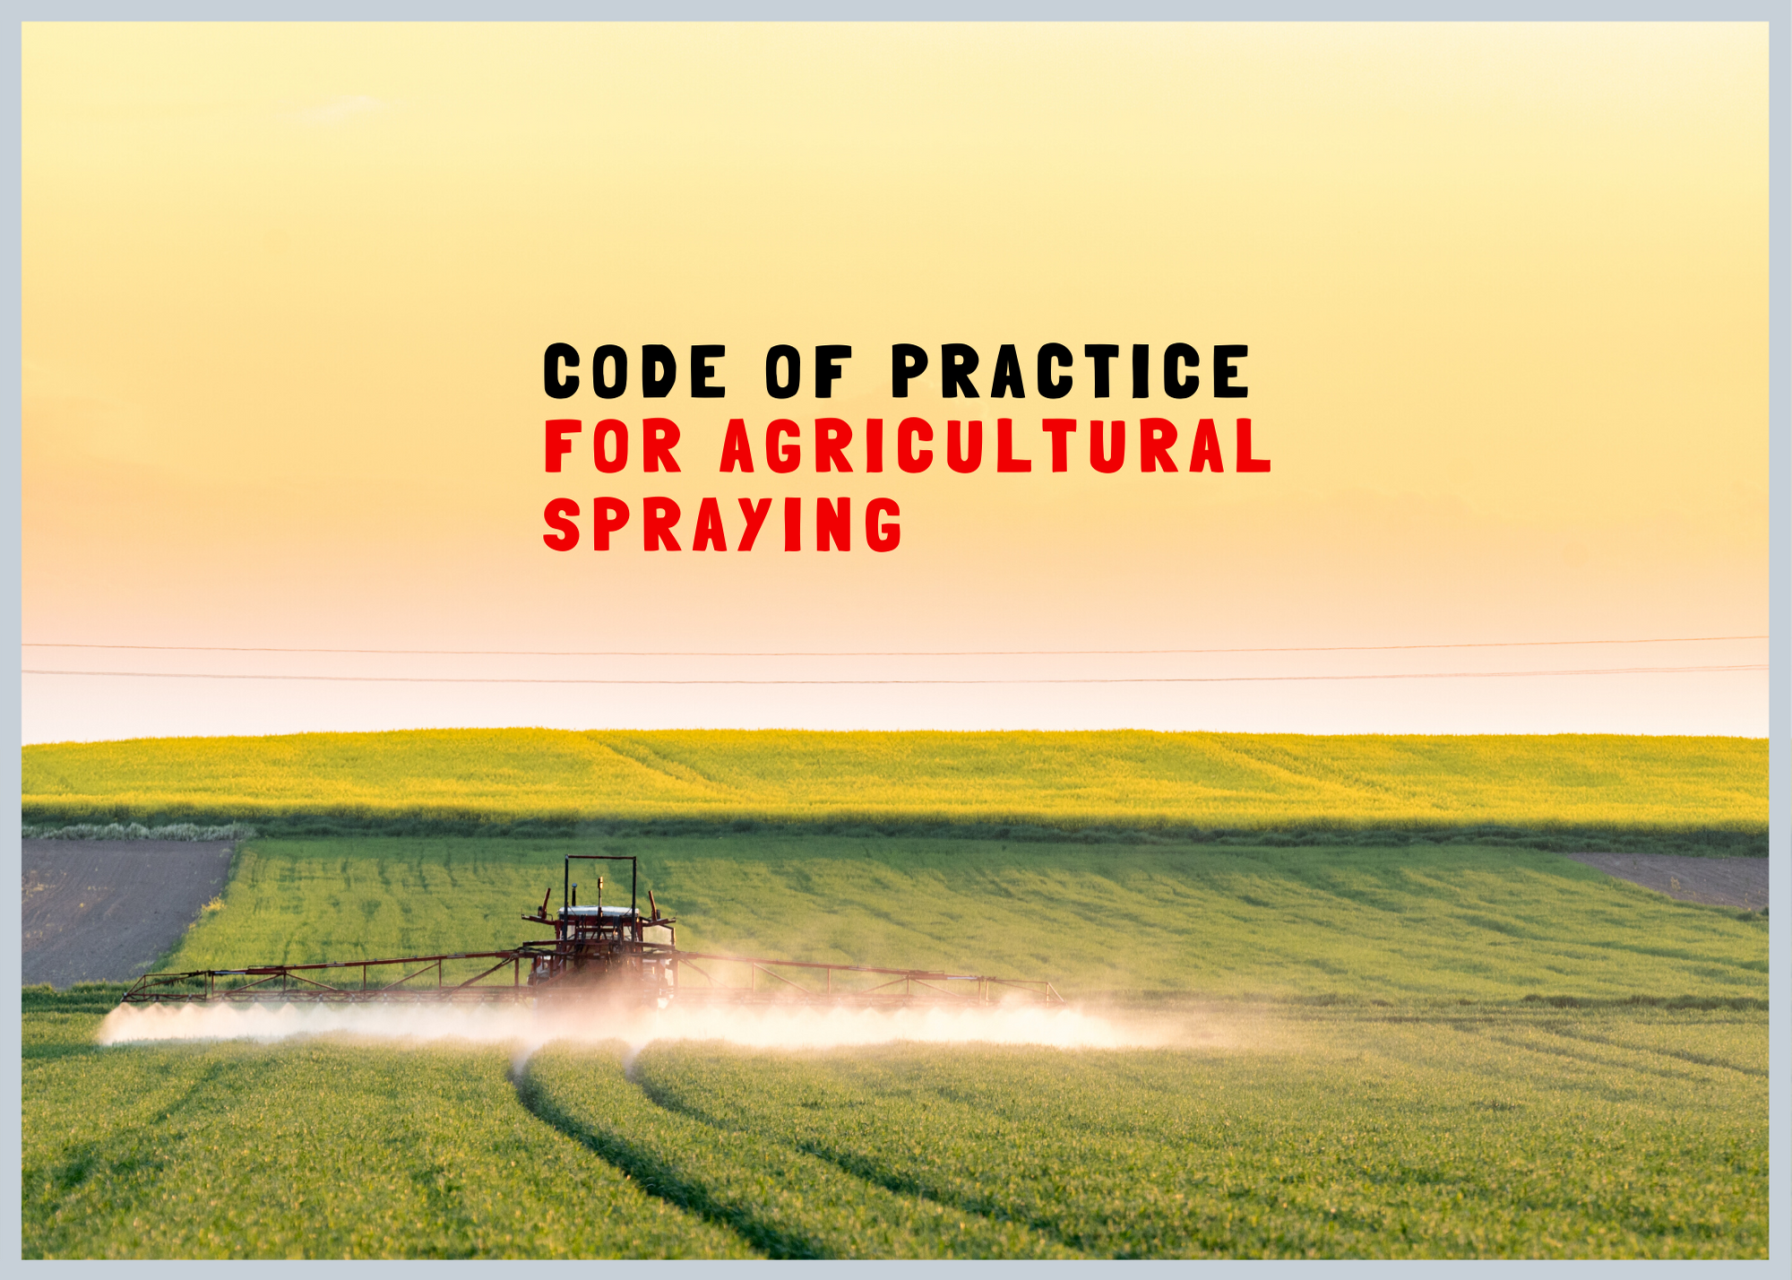 Code of Practice for Agricultural Spraying